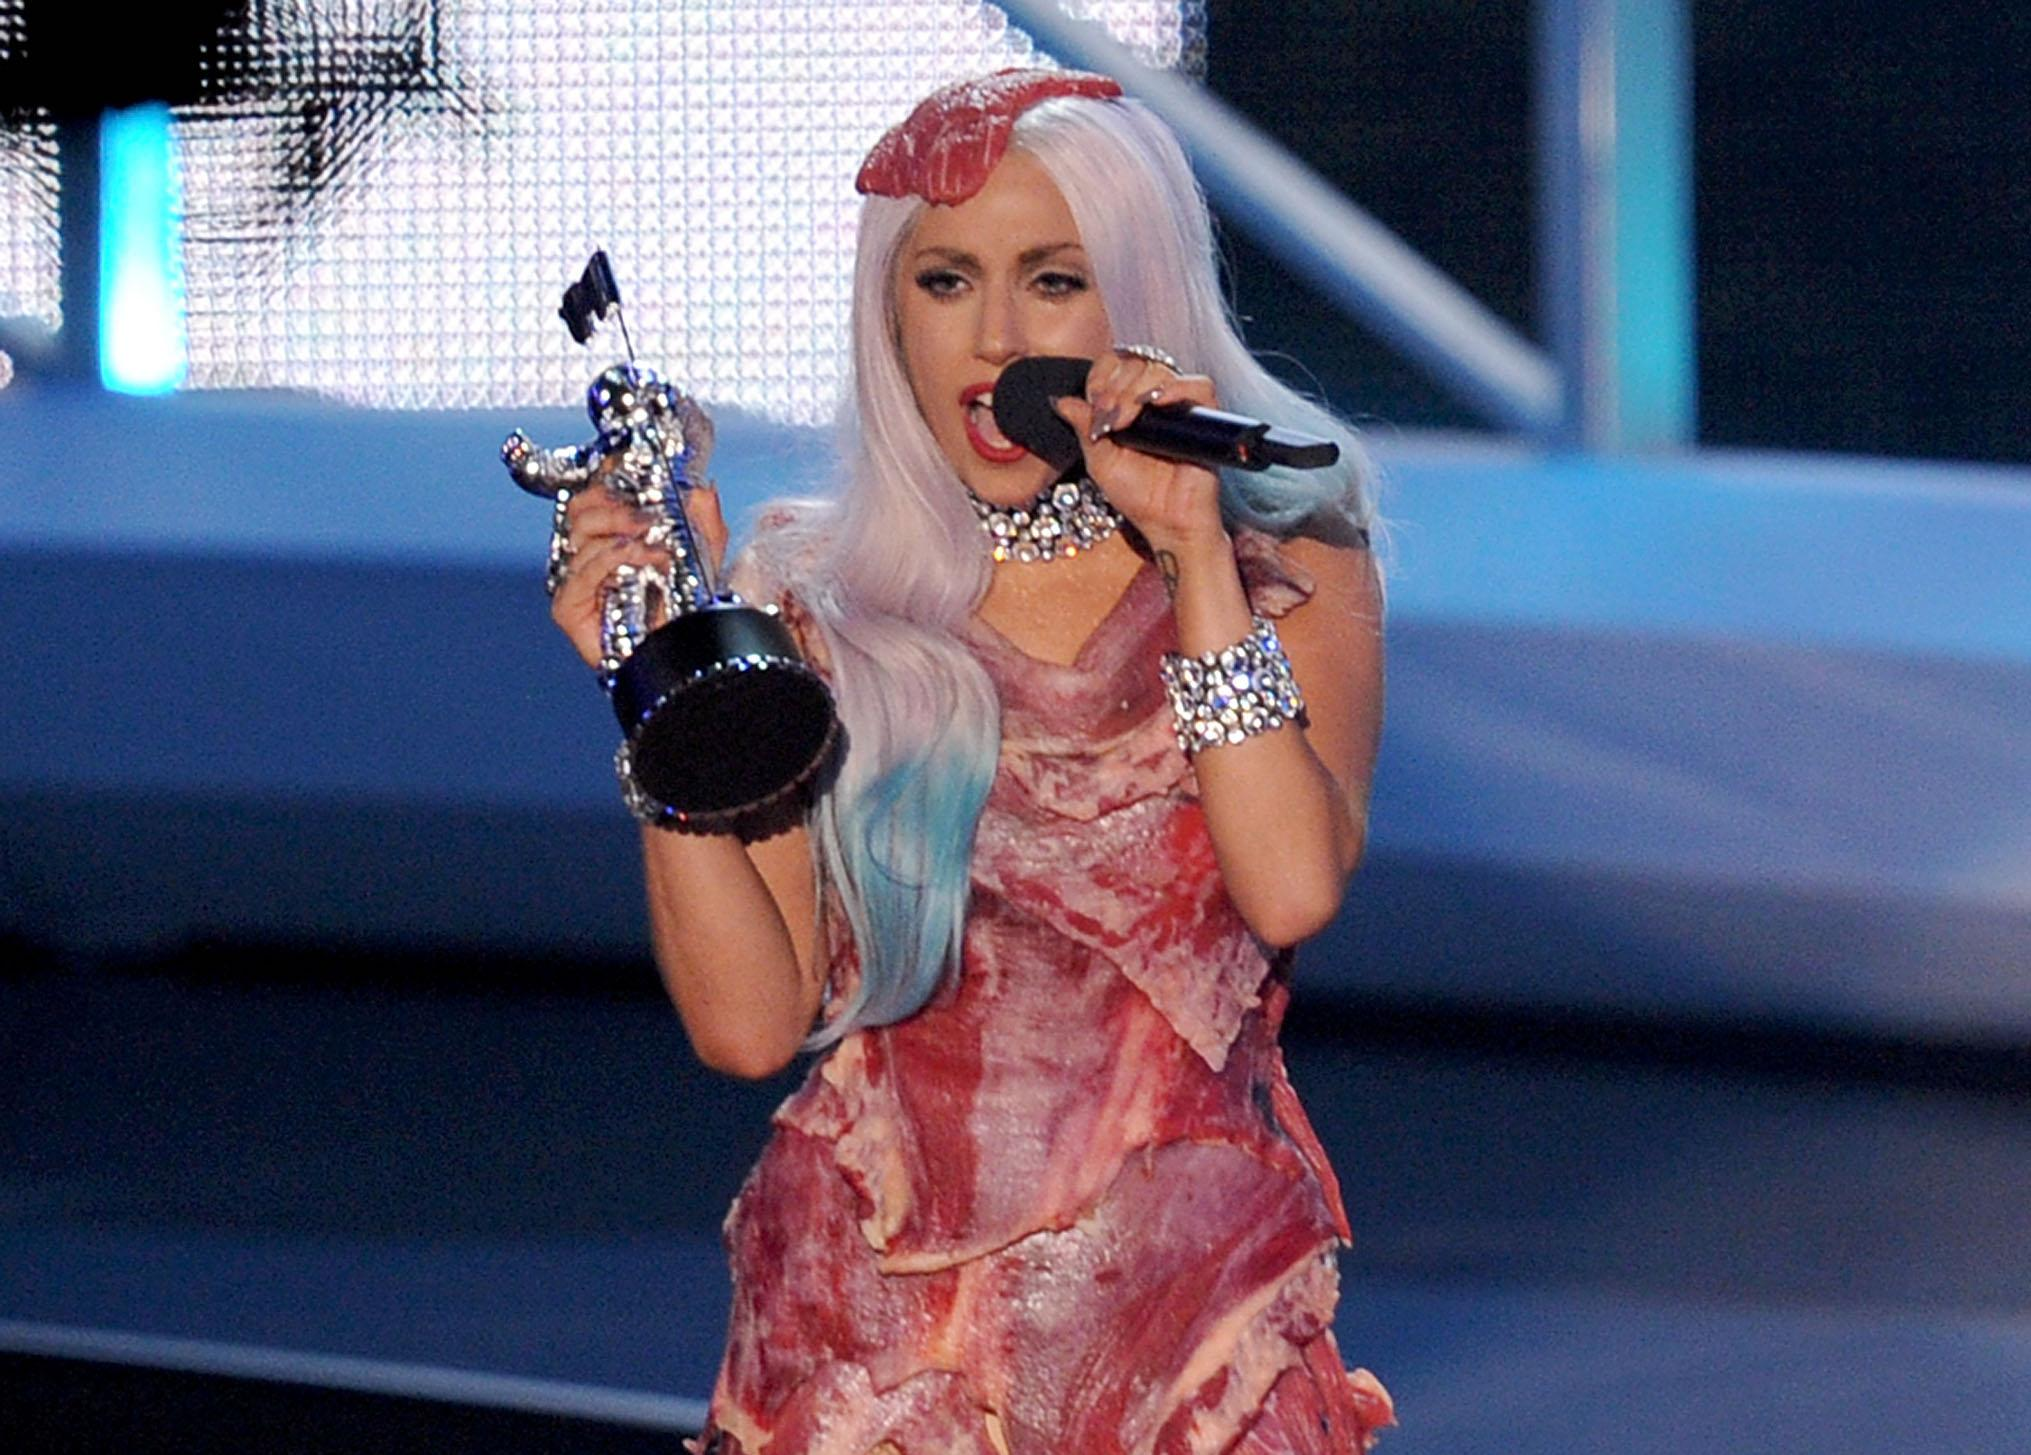 meat-dress-lady-gaga-1540314640040-1540314642298.jpg